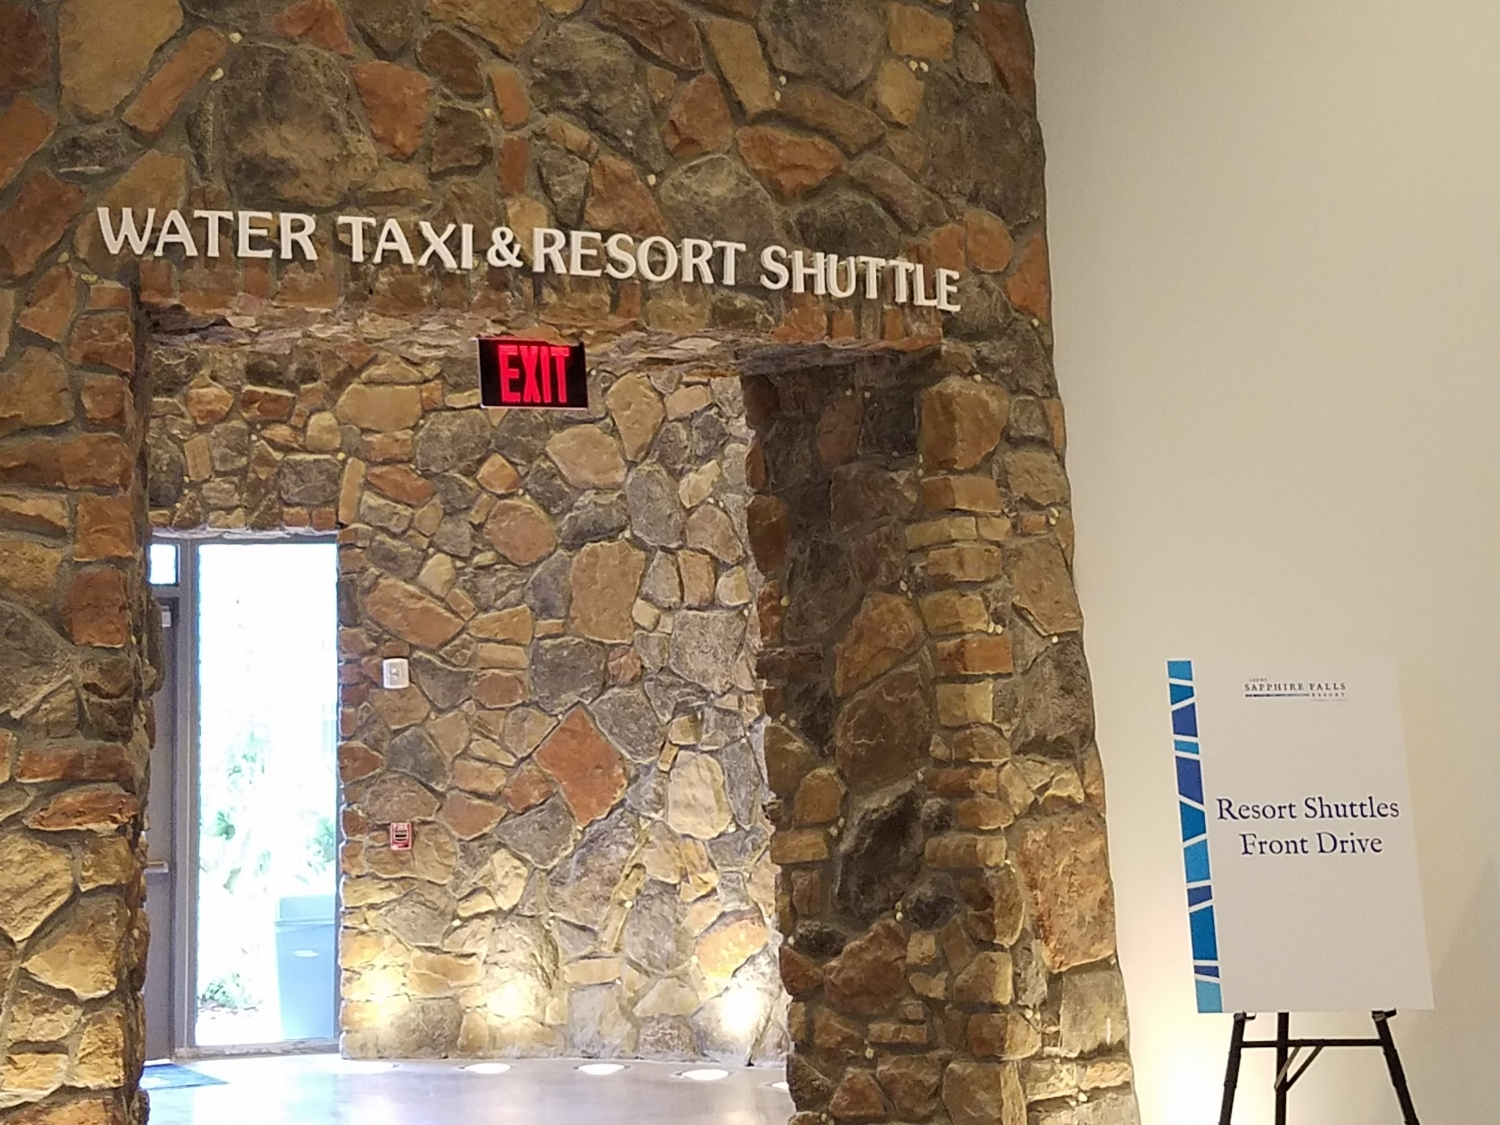 Water Taxi/Resort Shuttle Entrance/Exit at Loews Sapphire Falls Resort